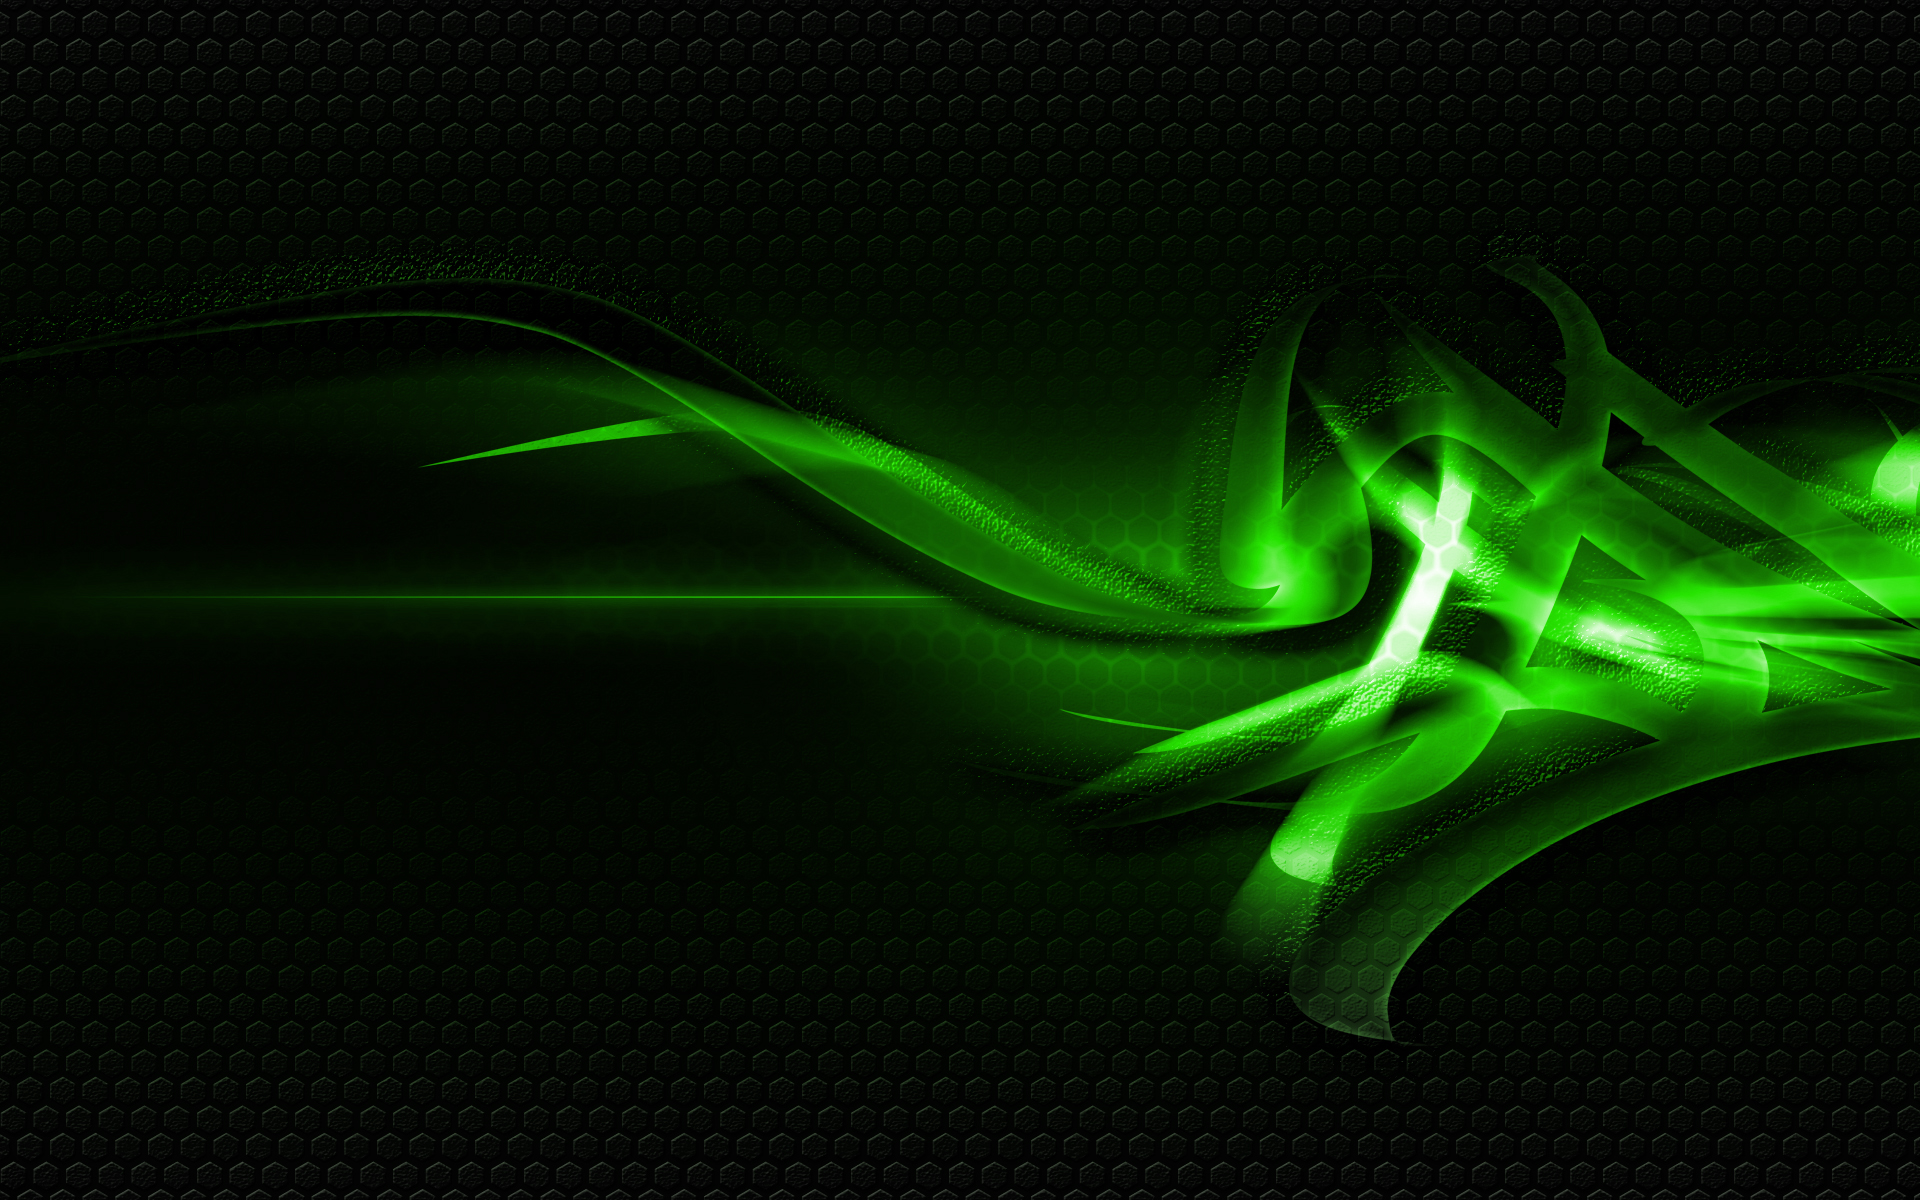 1920 x 1200 Wallpapers Widescreen Wallpapers 14812 abstract green 1920x1200